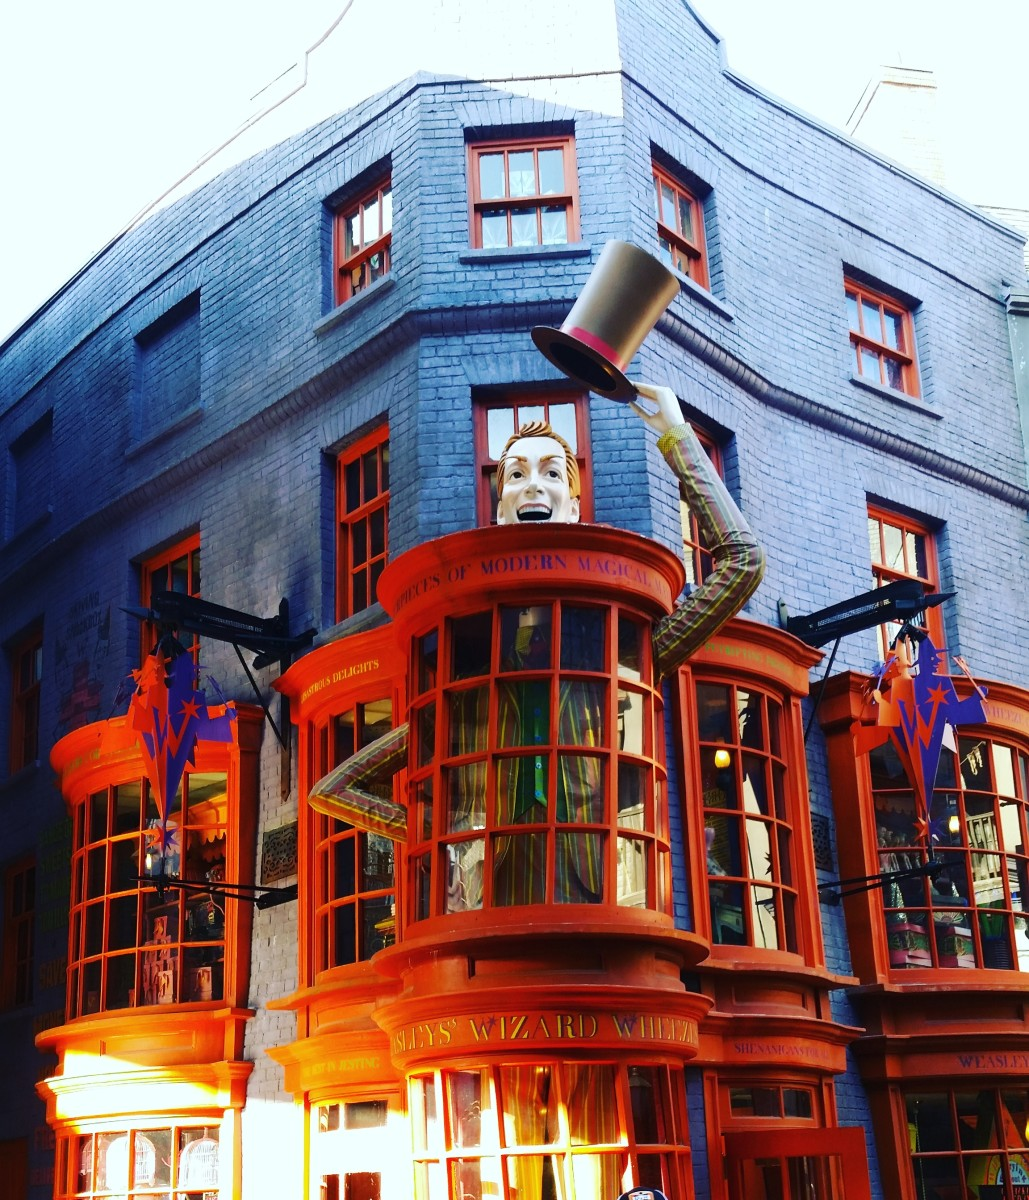 Weasley's Wizard Wheezes at Diagon Alley in the Wizarding World of Harry Potter